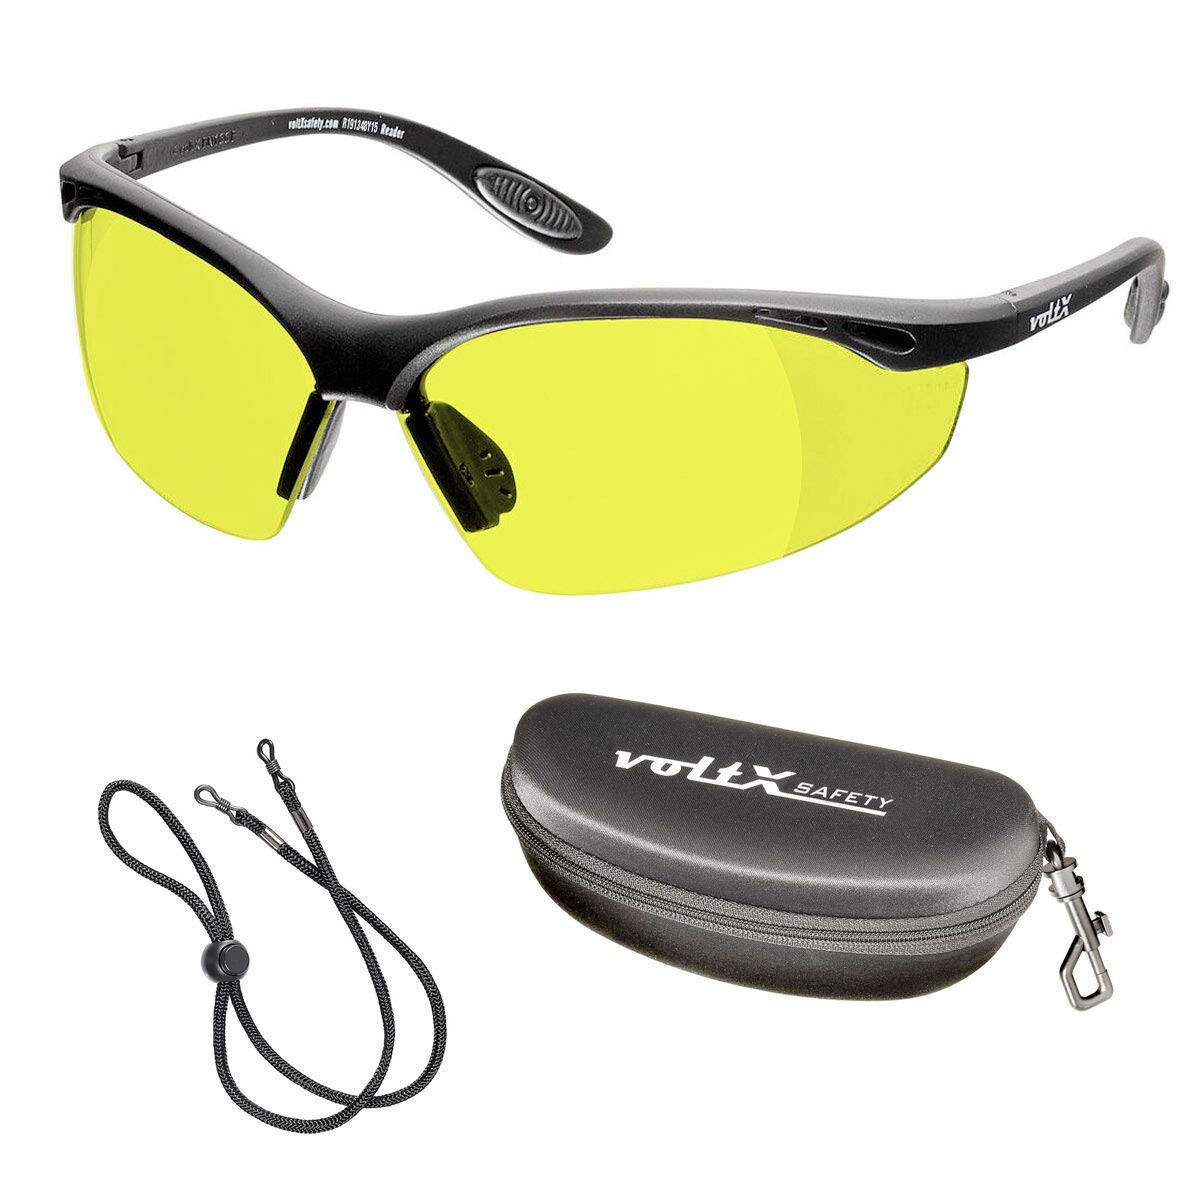 635c46678a3 voltX  Constructor  SAFETY READERS Full Lens Reading Safety Glasses CE  EN166f certified (+